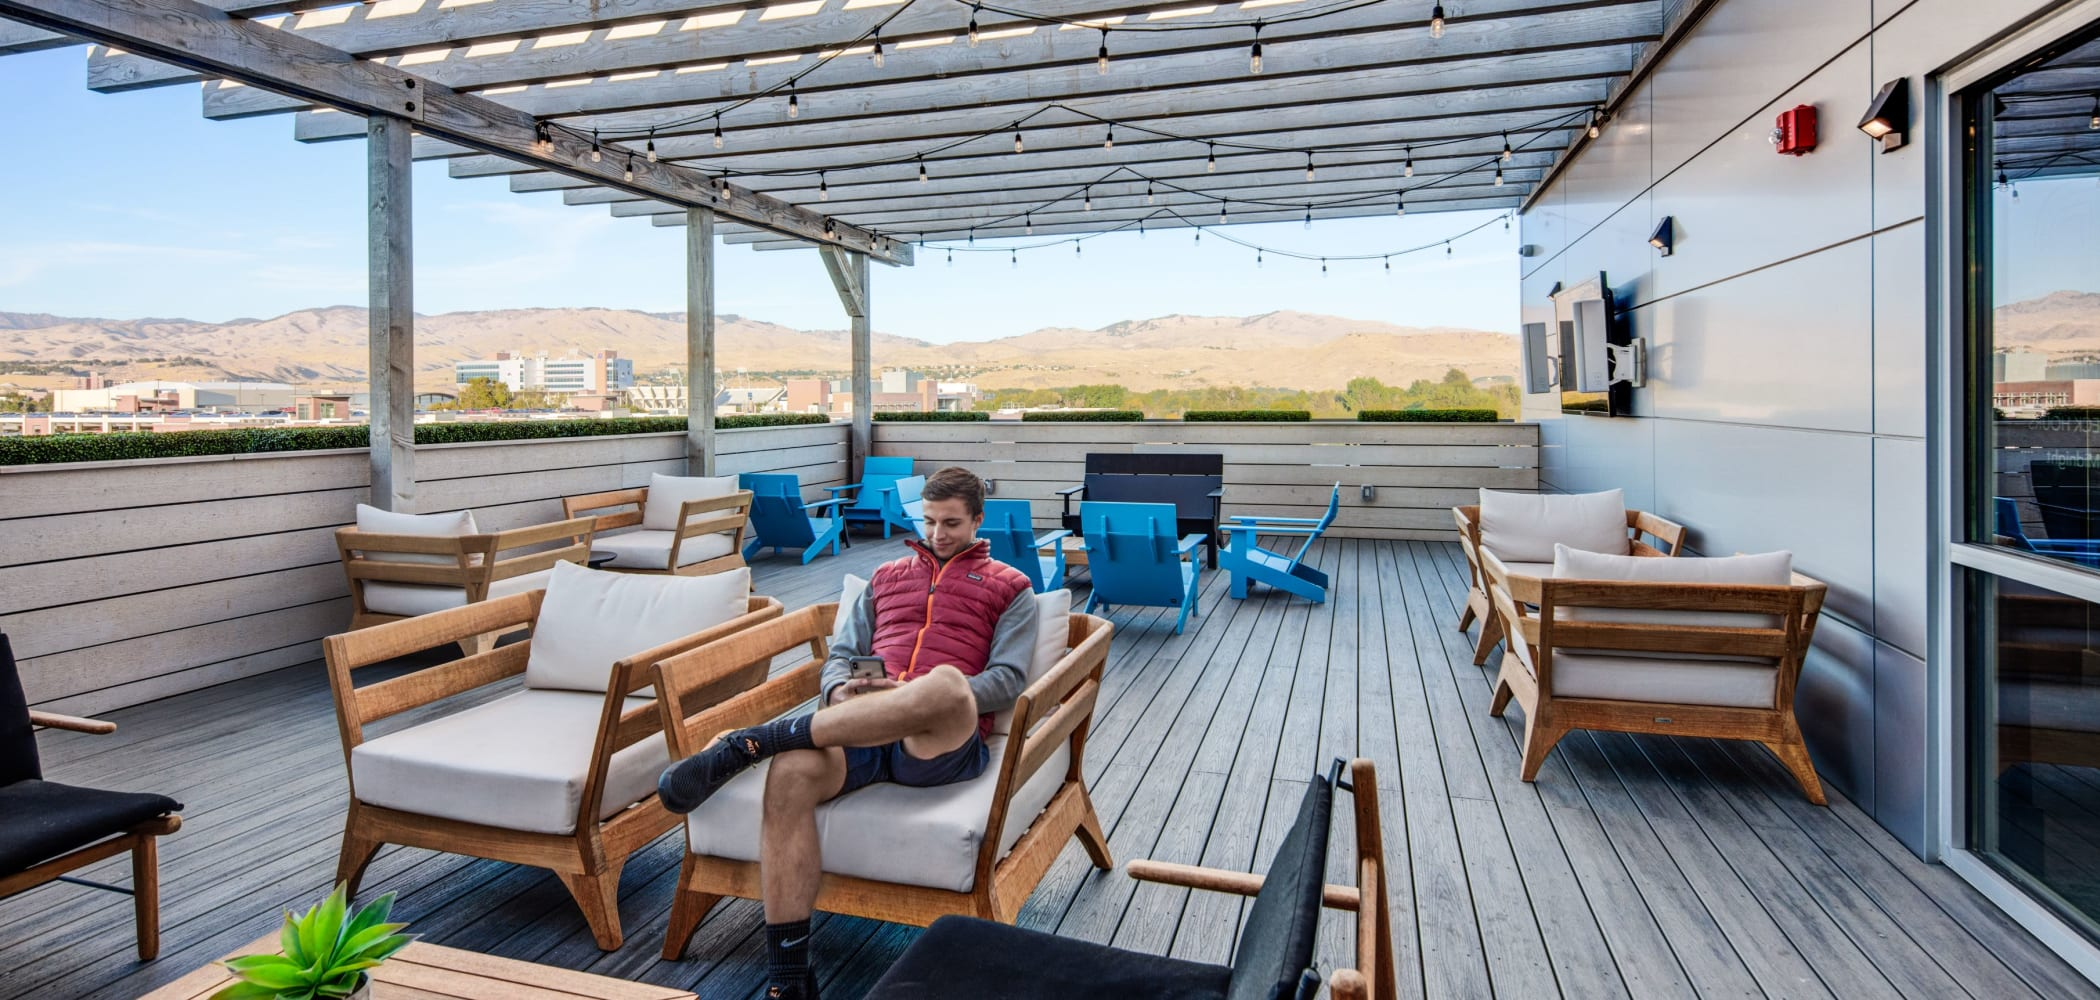 Outdoor, rooftop lounge at IDENTITY Boise in Boise, Idaho